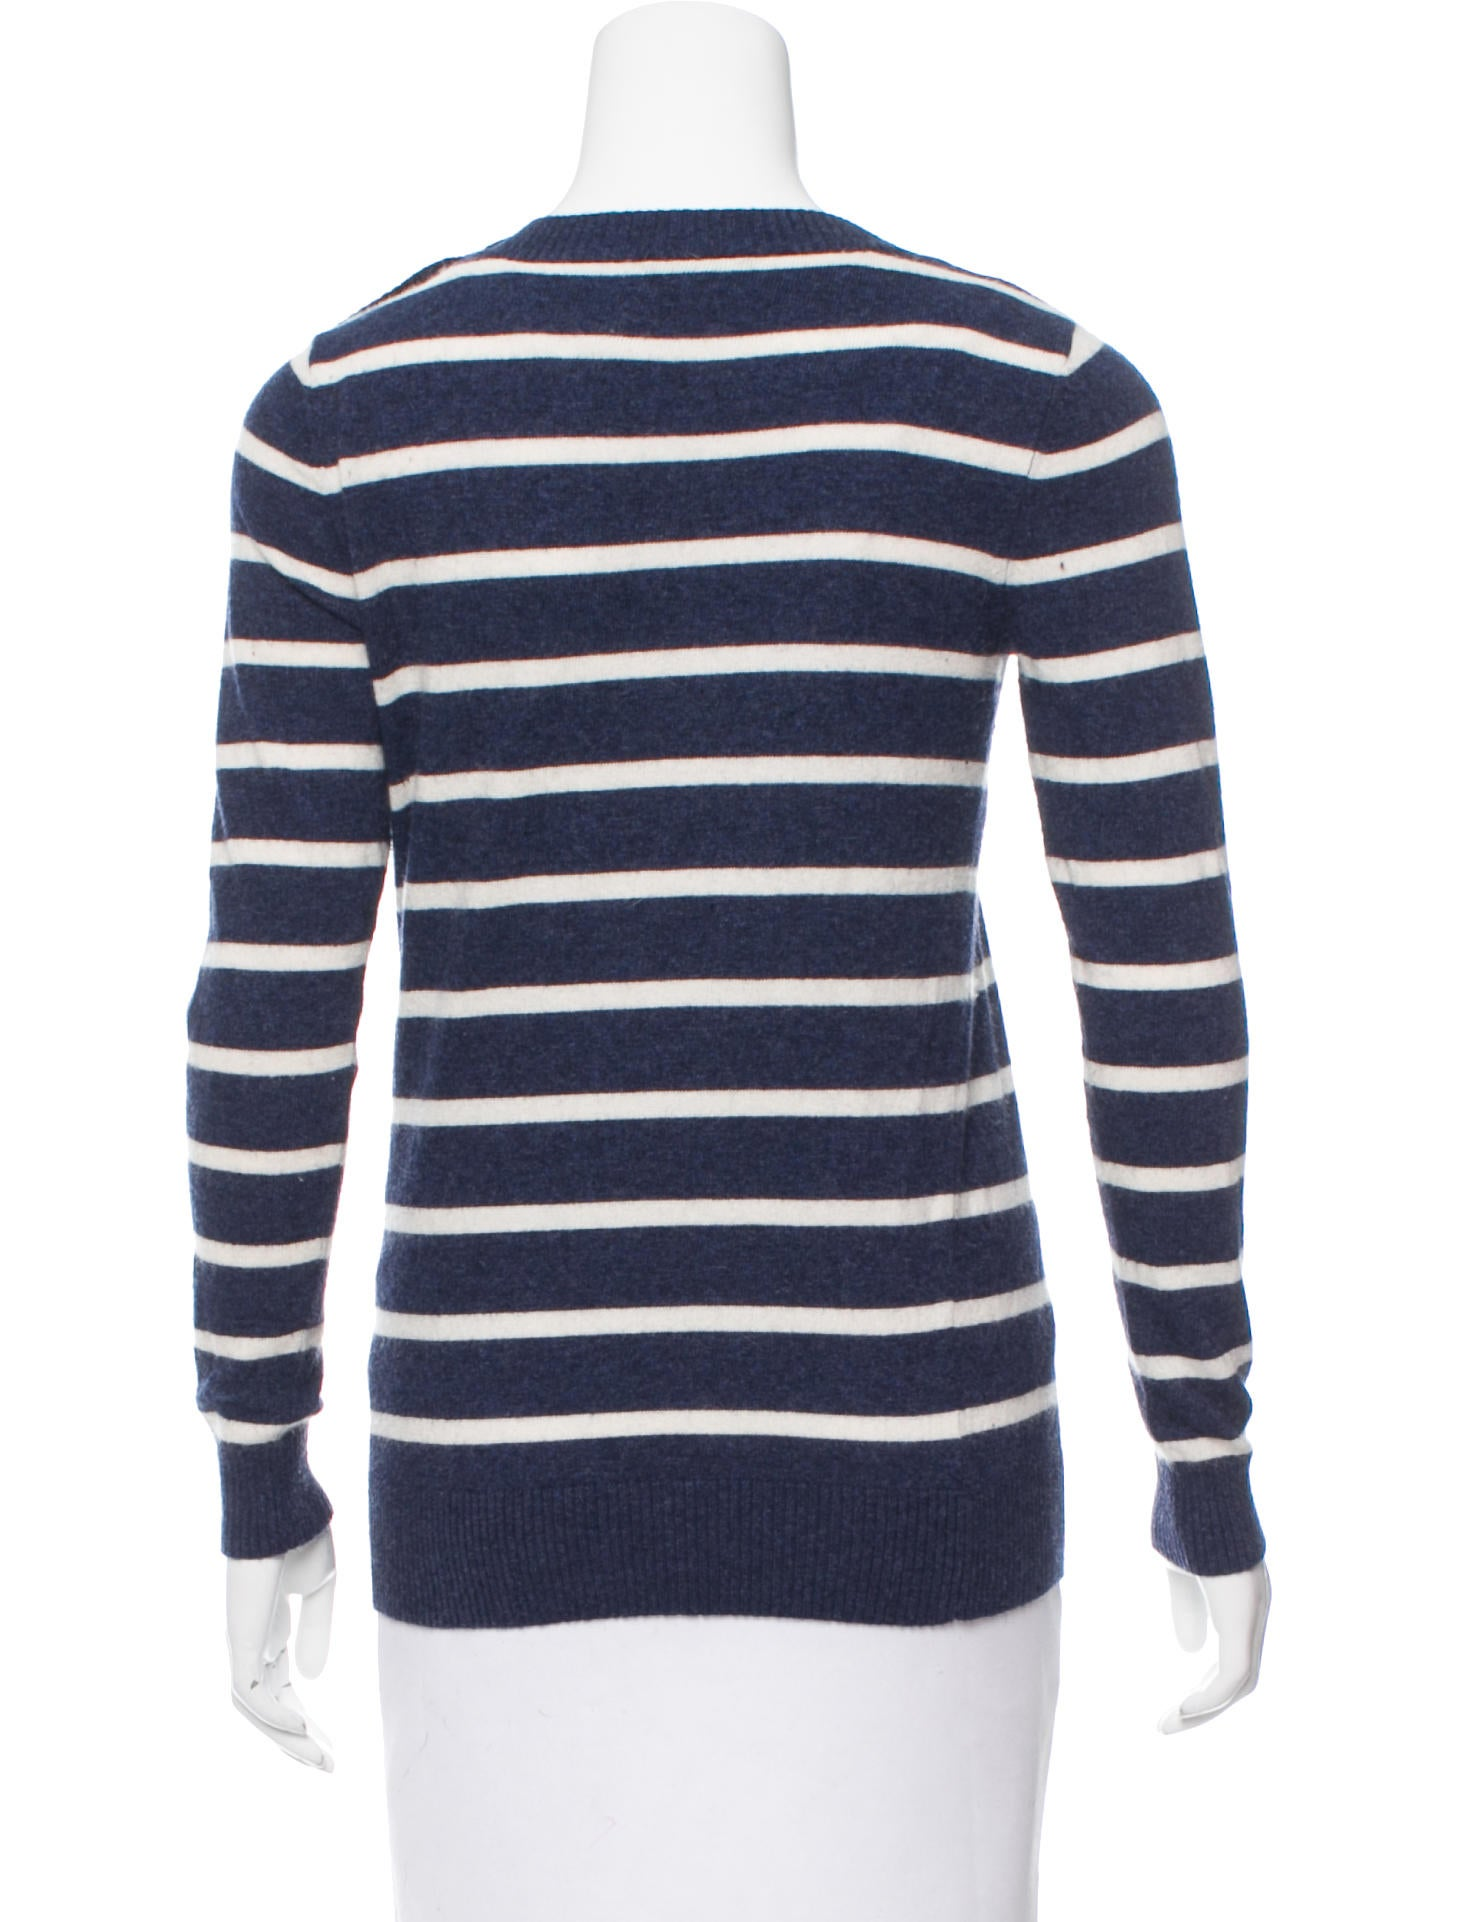 Knitting Pattern Striped Sweater : A.P.C. Striped Knit Sweater - Clothing - WA324178 The ...